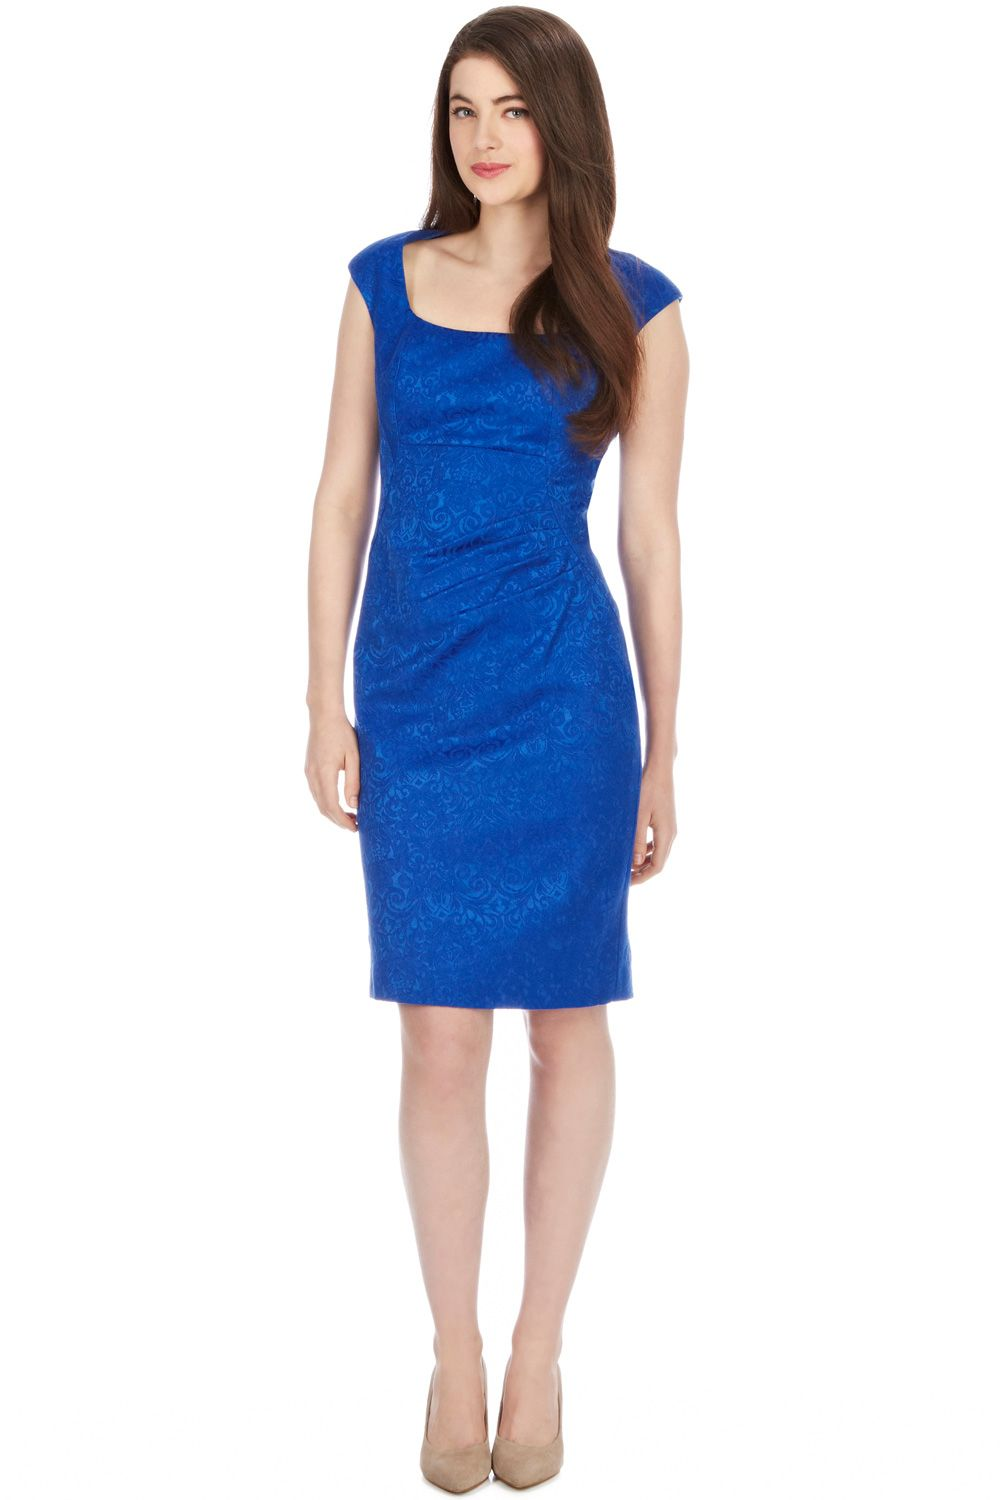 Lesley textured dress